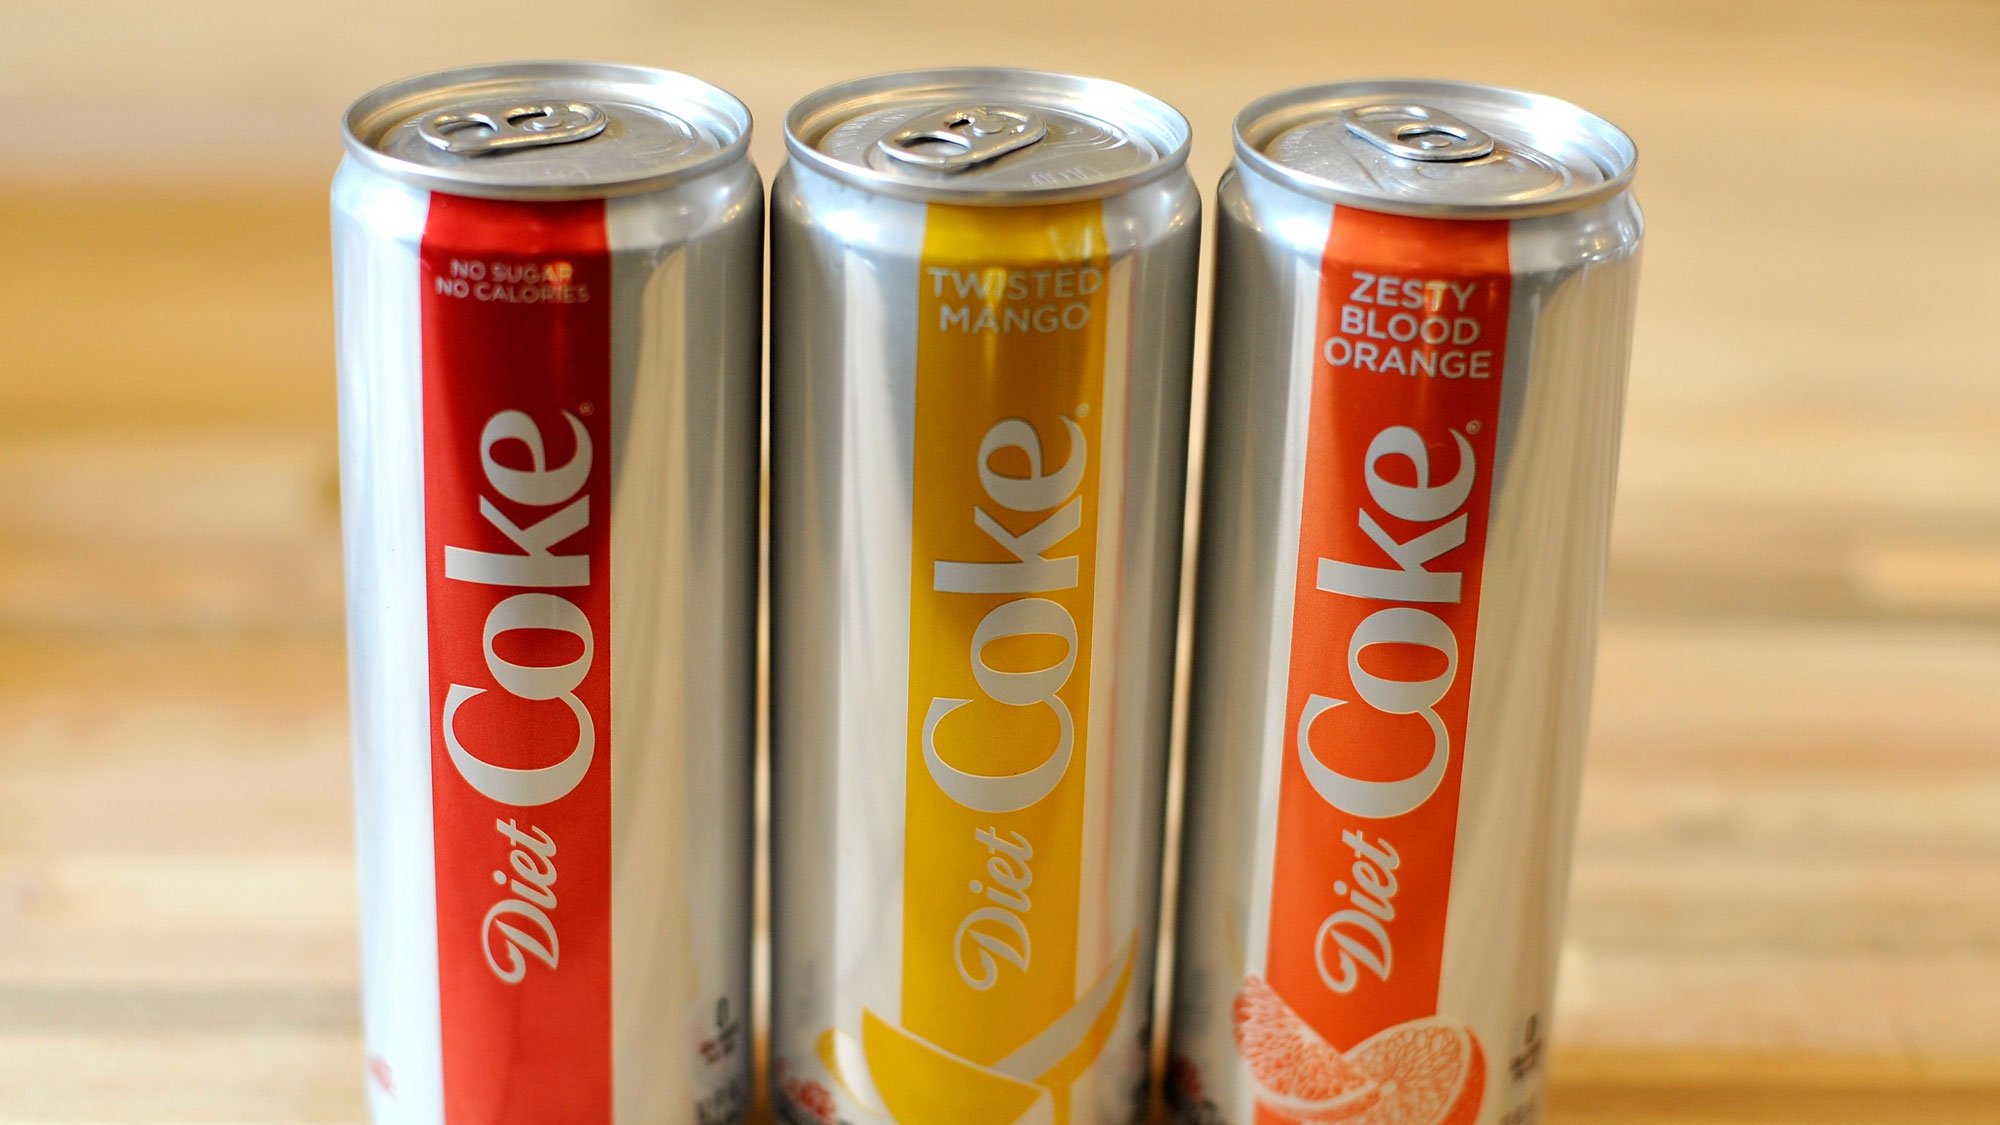 Sound the klaxon: a new Diet Coke flavour is here and you'll want to try it | Marie Claire